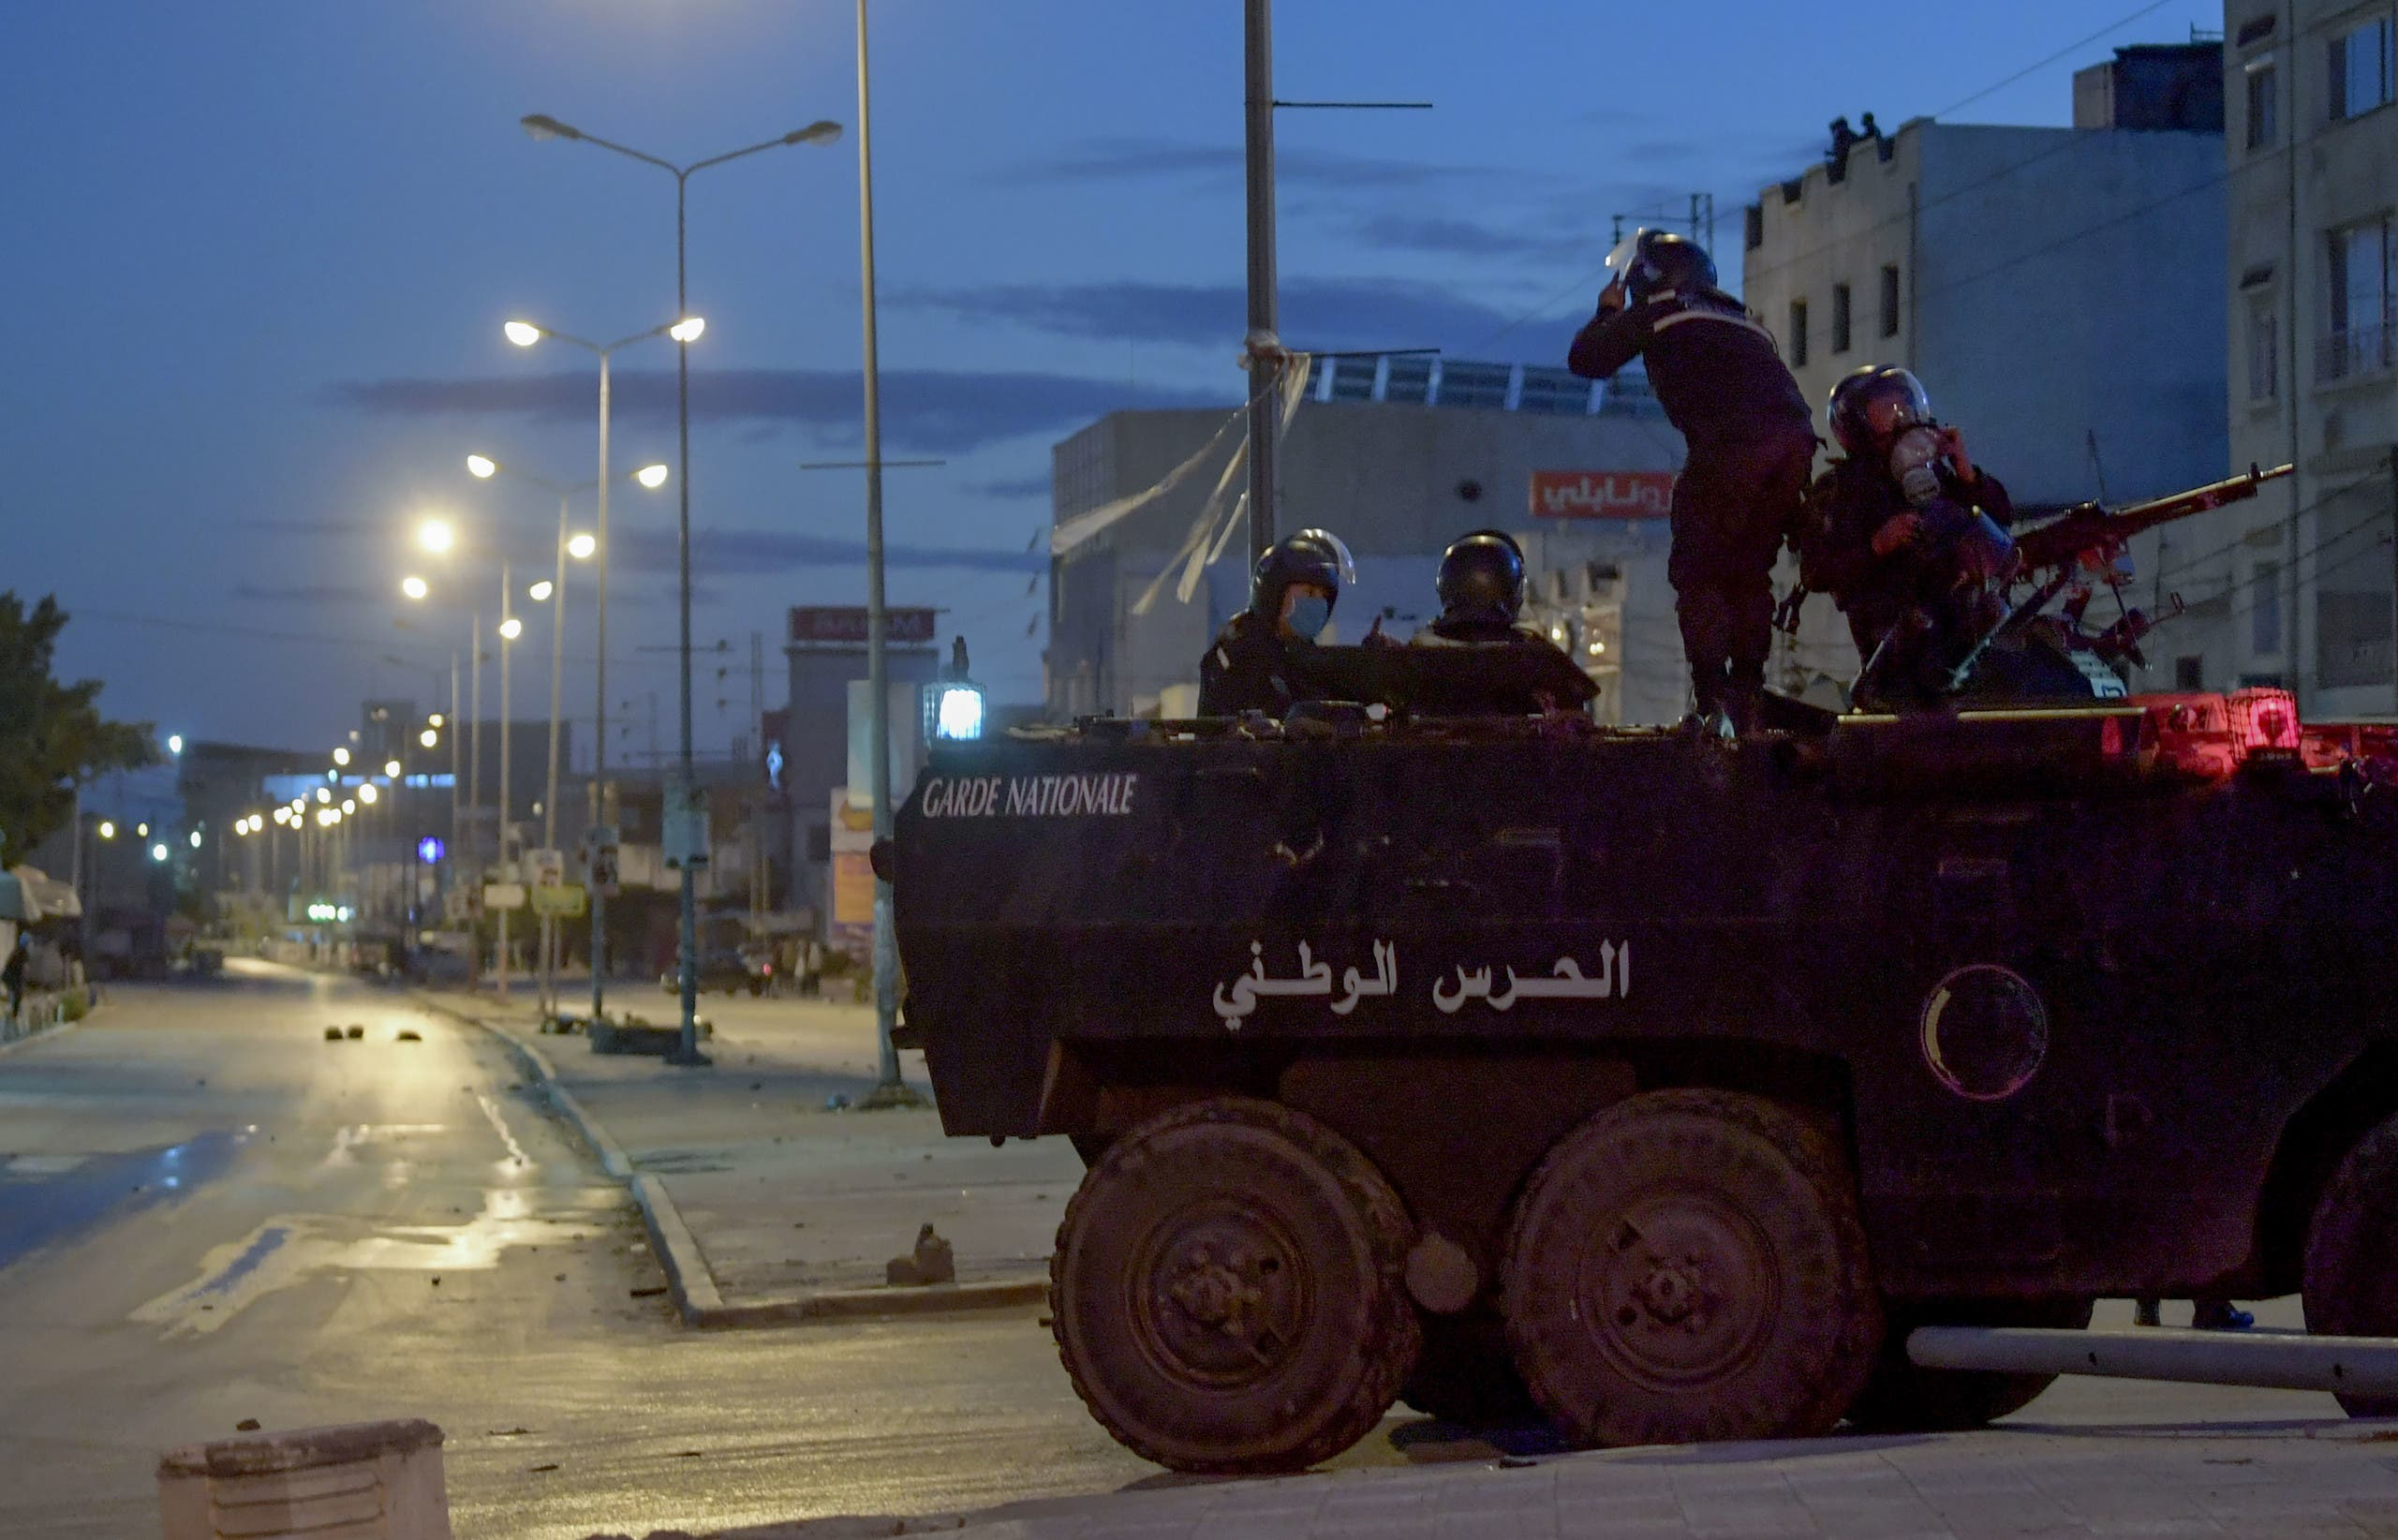 Members of the Tunisian National Guard sit atop their armoured vehicle, stationed on a street amid clashes with demonstrators following a protest in the Ettadhamen neighbourhood in the capital Tunis, on January 17, 2021. (AFP)